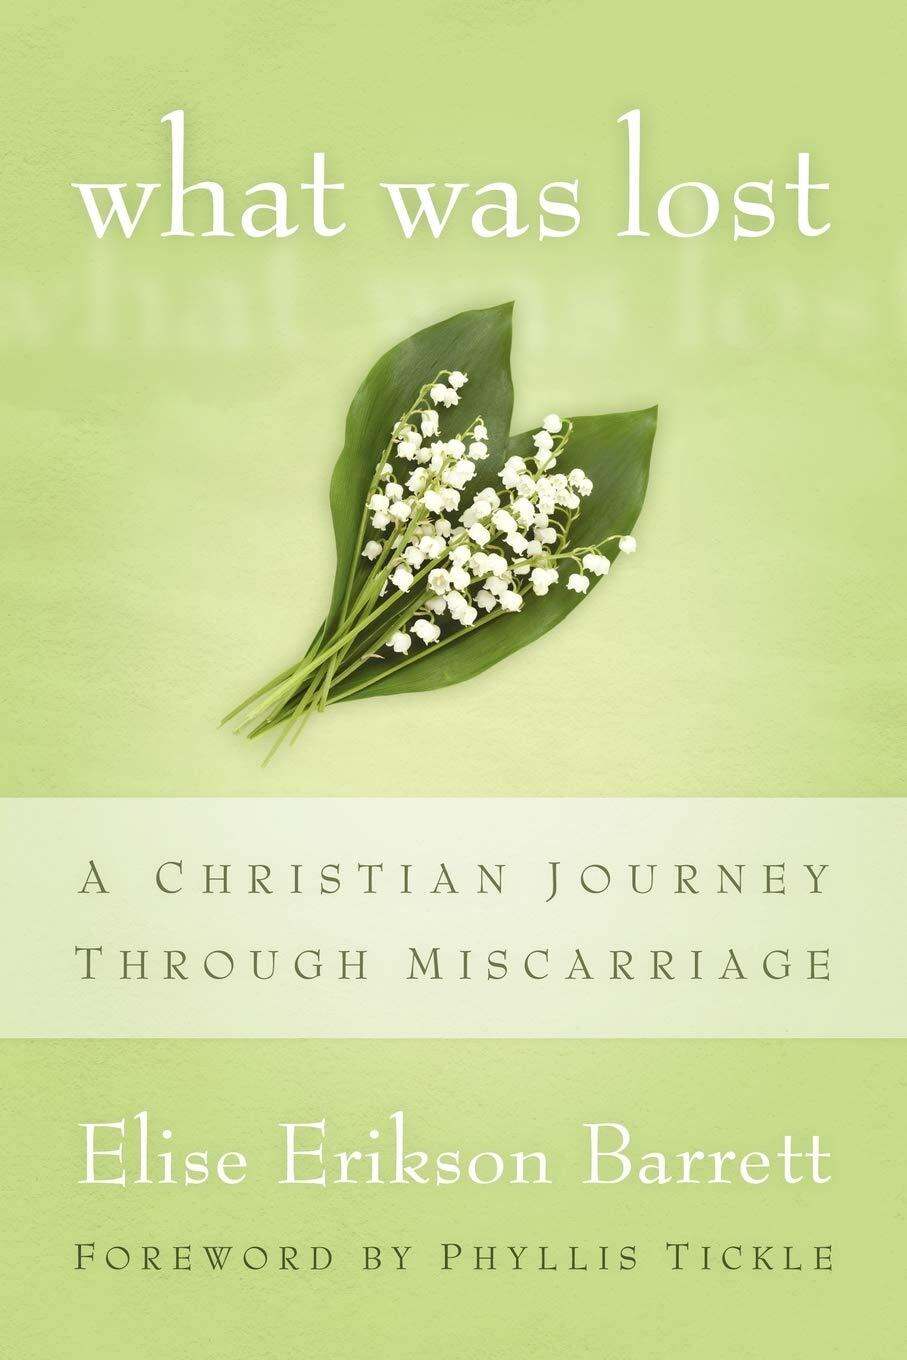 What Was Lost: A Christian Journey Through Miscarriage Paperback Book